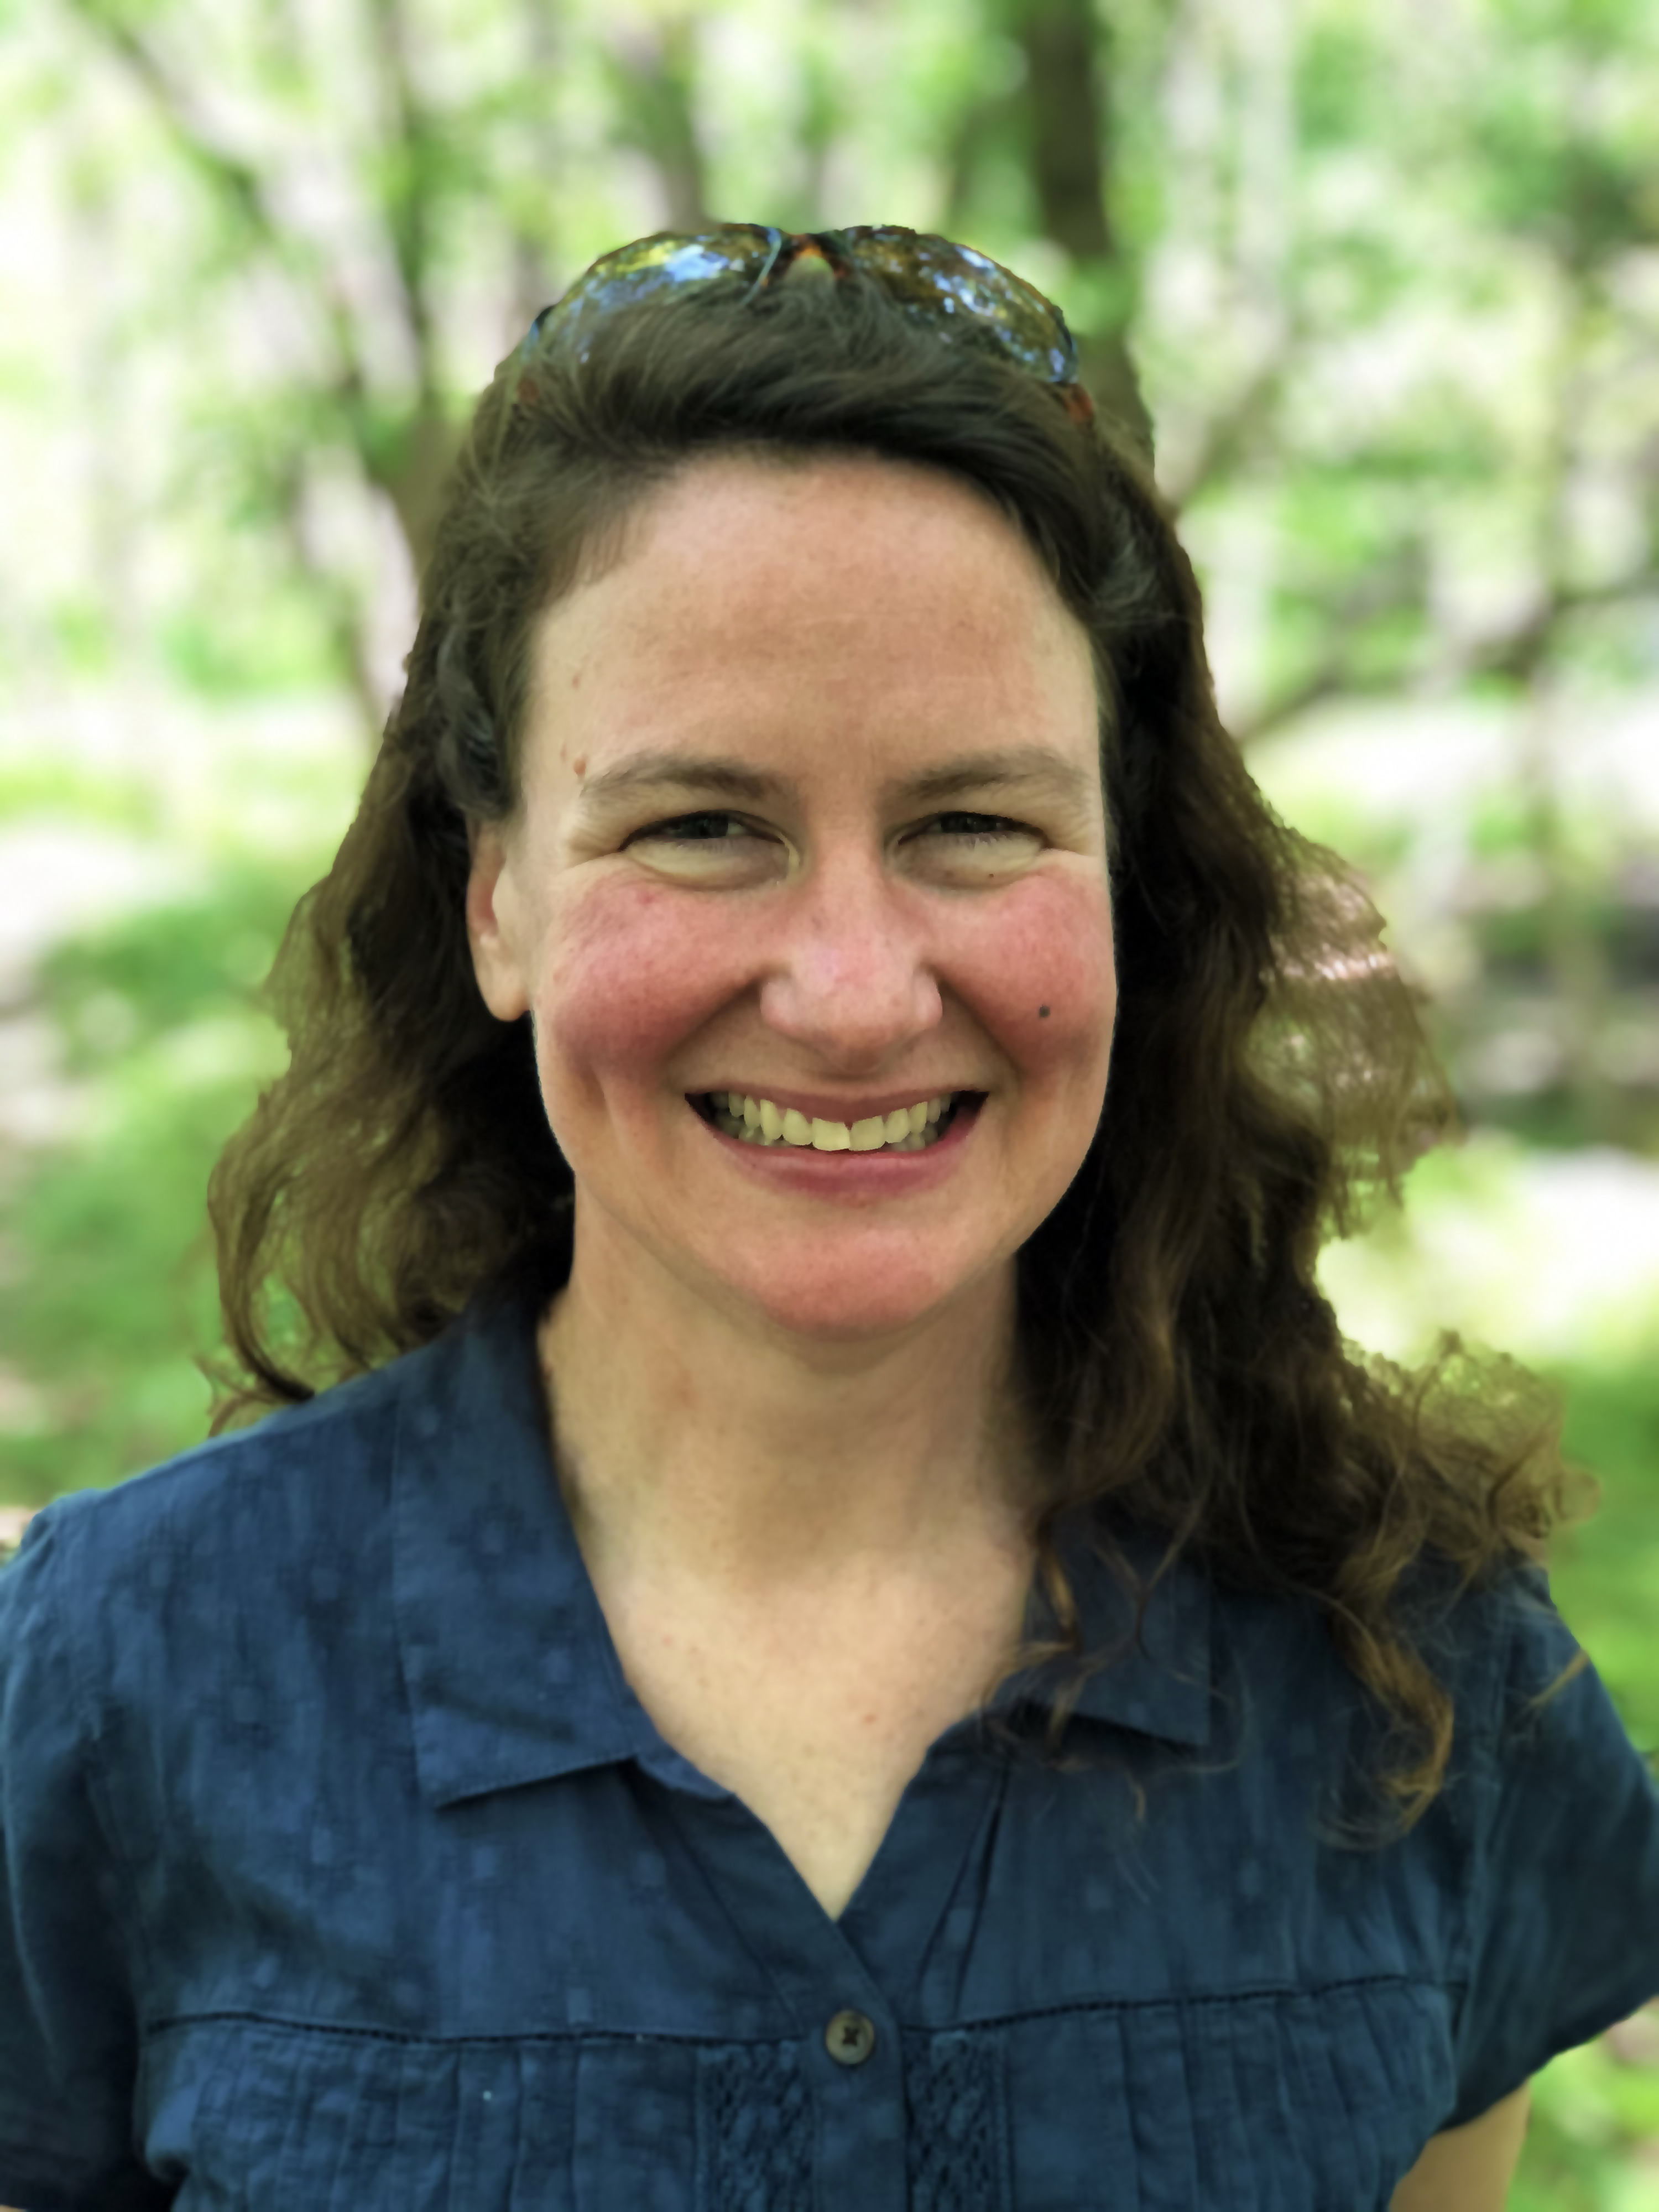 April Sansom Selected To Lead Selah Bamberger Ranch